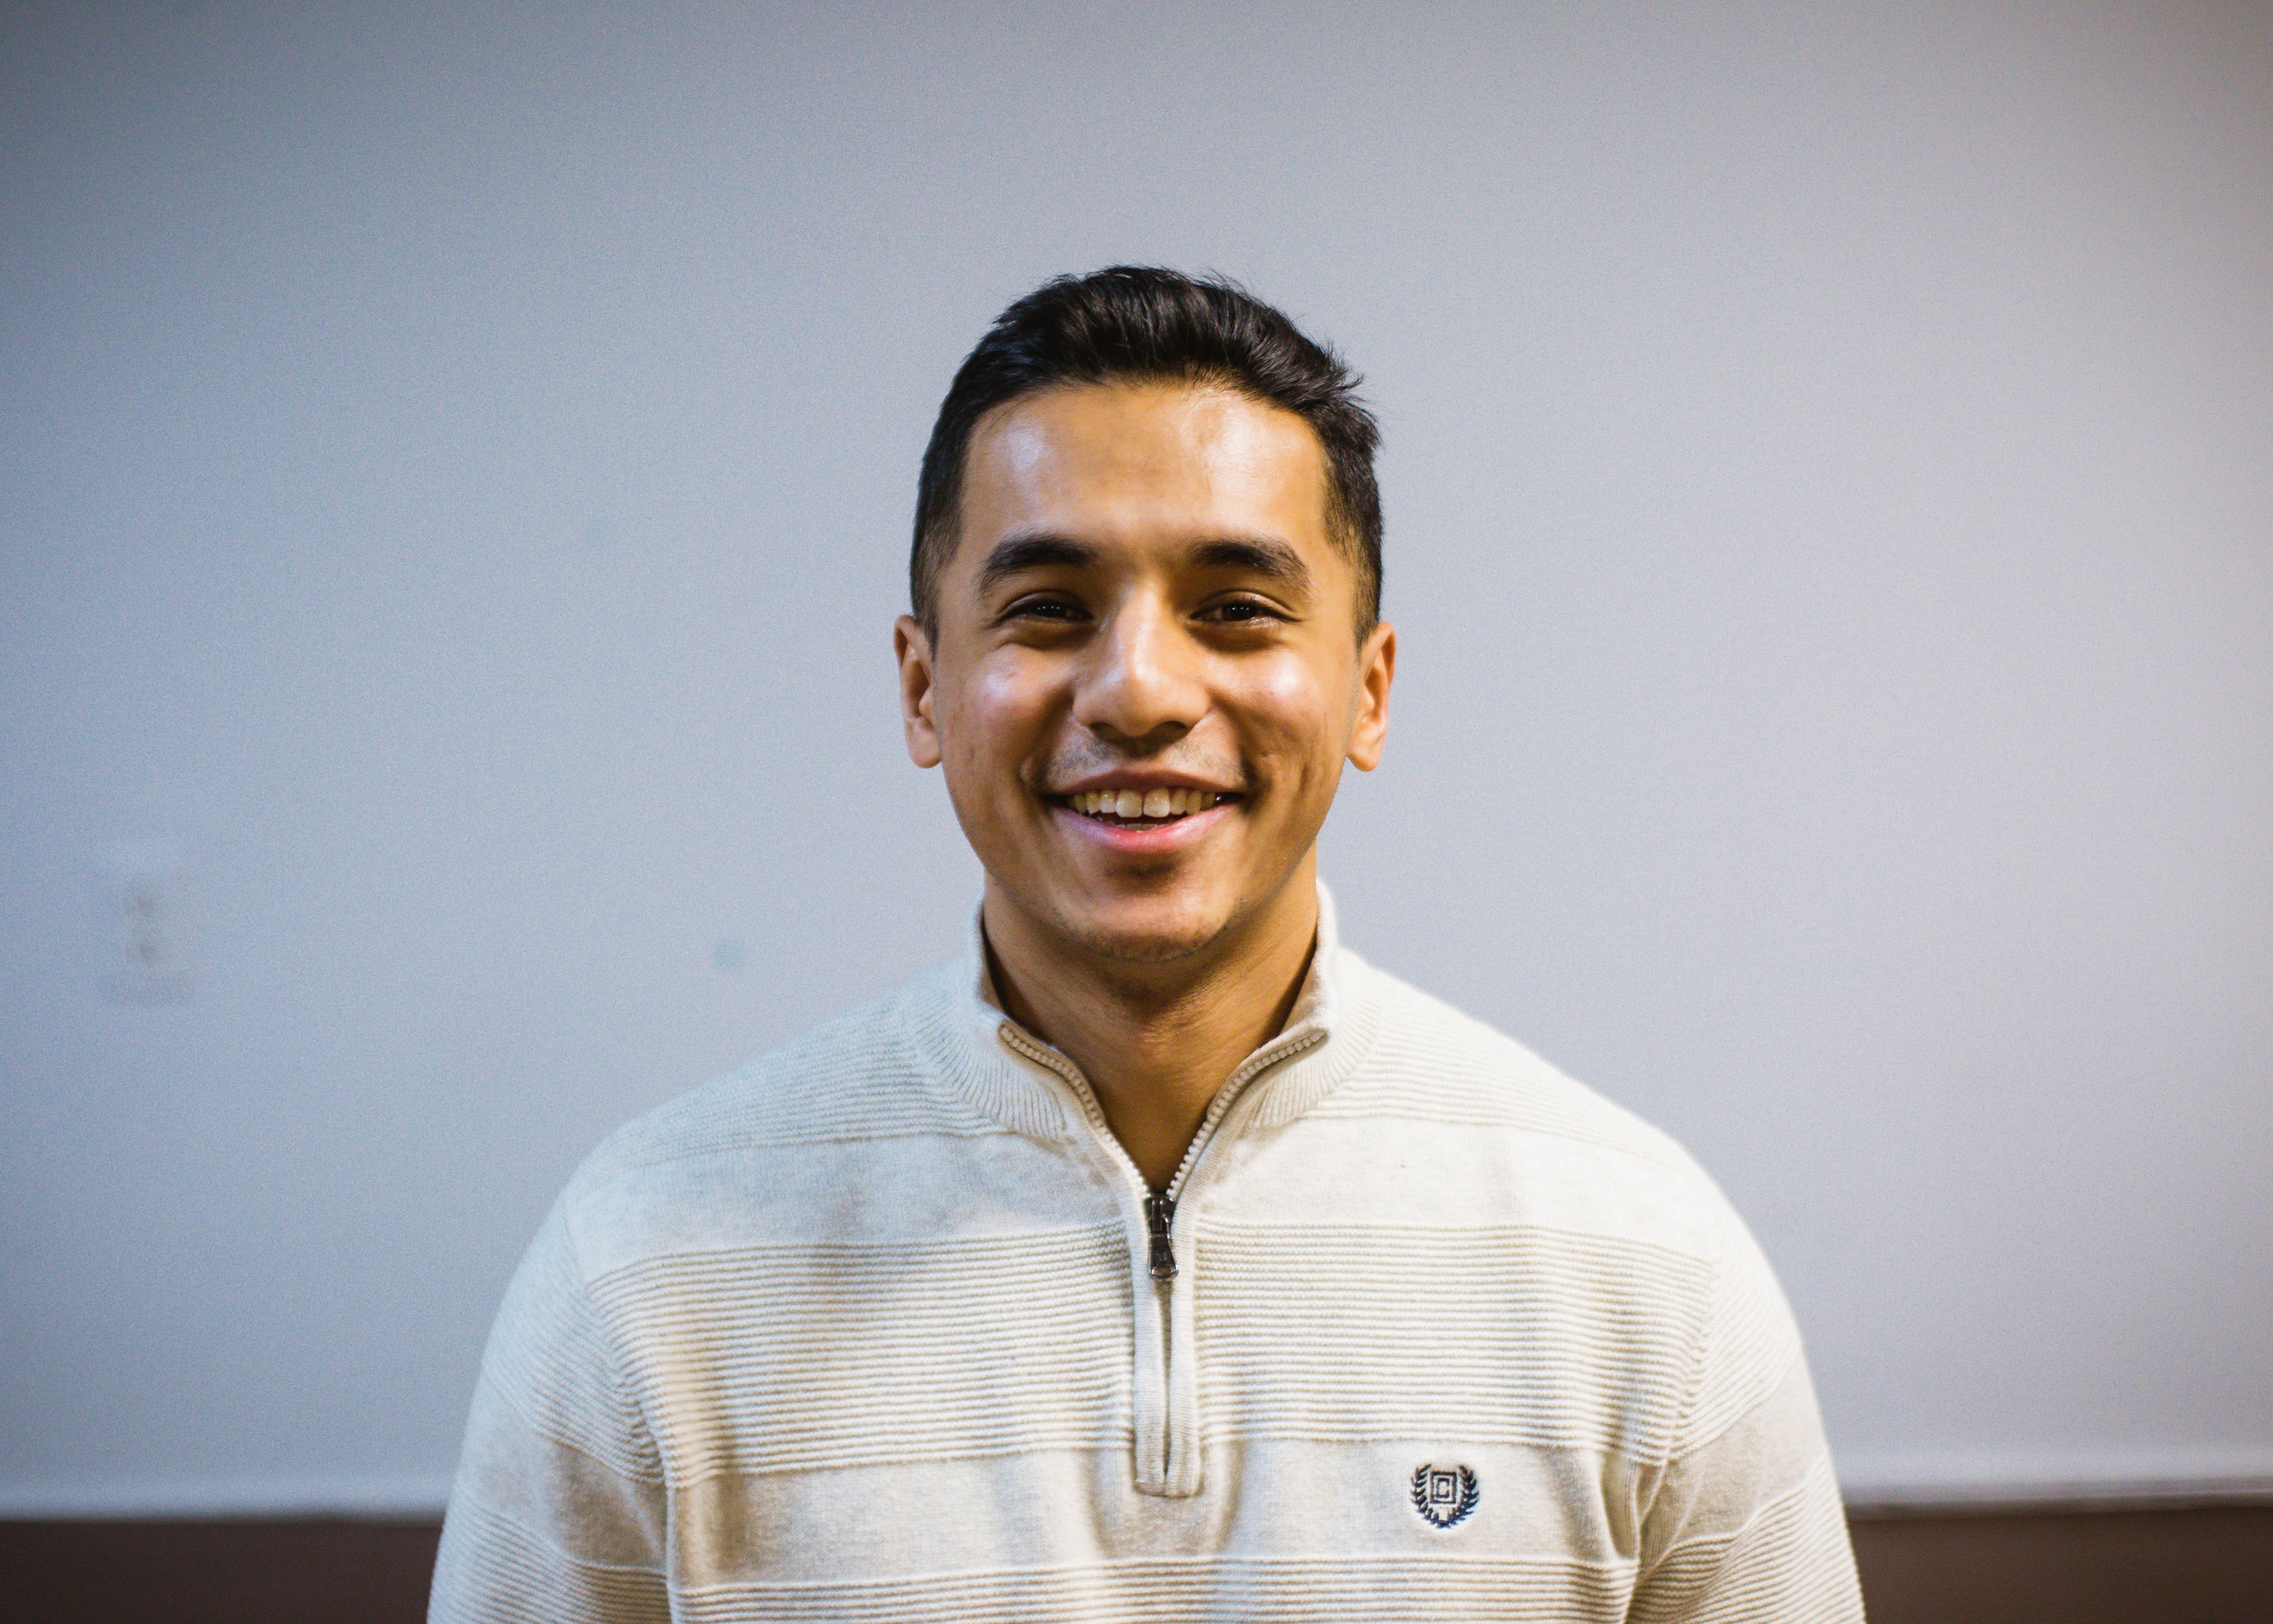 PARAM YONZON - Hey, my name is Param and I'm a Pastoral Apprentice at New Hope. I was born and raised in Minnesota into a Nepali family who were culturally Hindu and Buddhist. I was introduced to the Christian faith at New Hope when I was a freshman studying at St. John's University. I fell in love with Jesus through being discipled, reading the scriptures, and spending time in community at New Hope. I currently work for a risk finance firm and go to school at Reformed Theological Seminary. My hobbies include running, reading, and hiking!